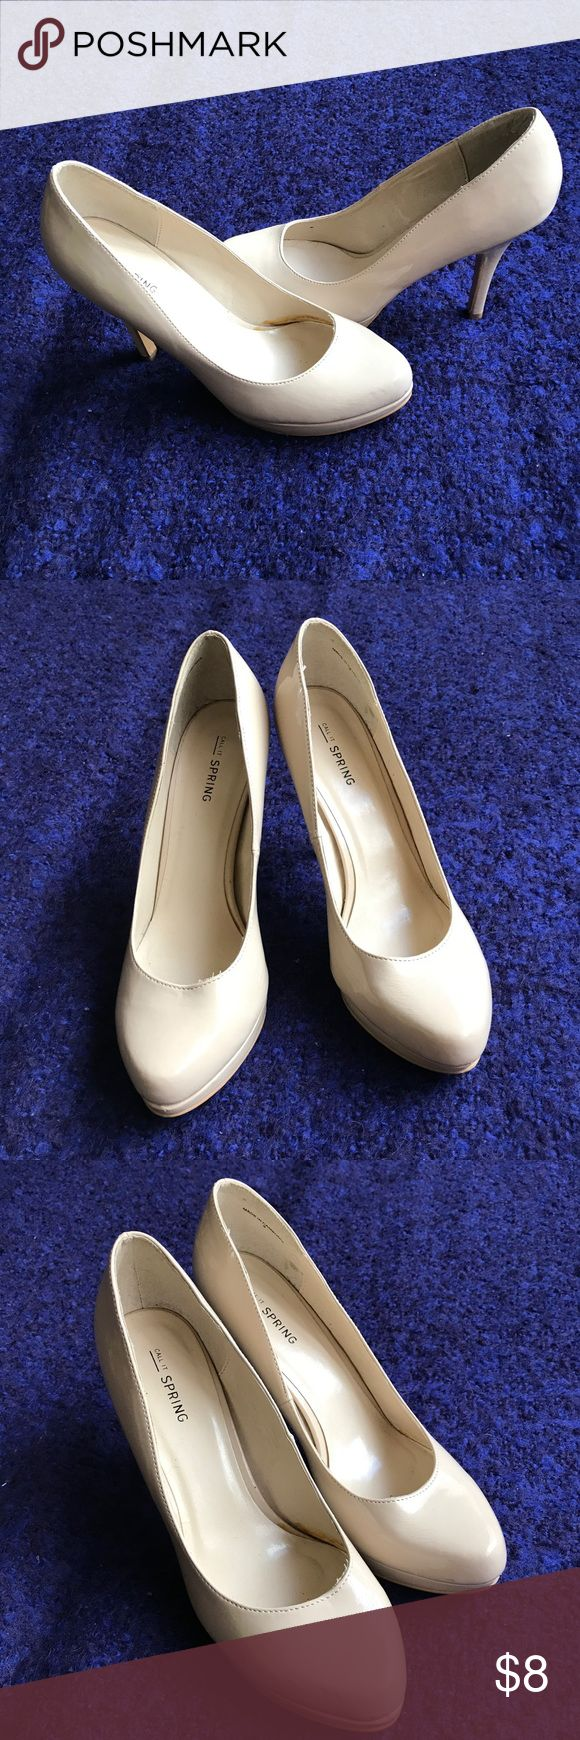 Call It Spring Cream Pumps Very nice and comfortable pumps. Call It Spring Shoes Heels